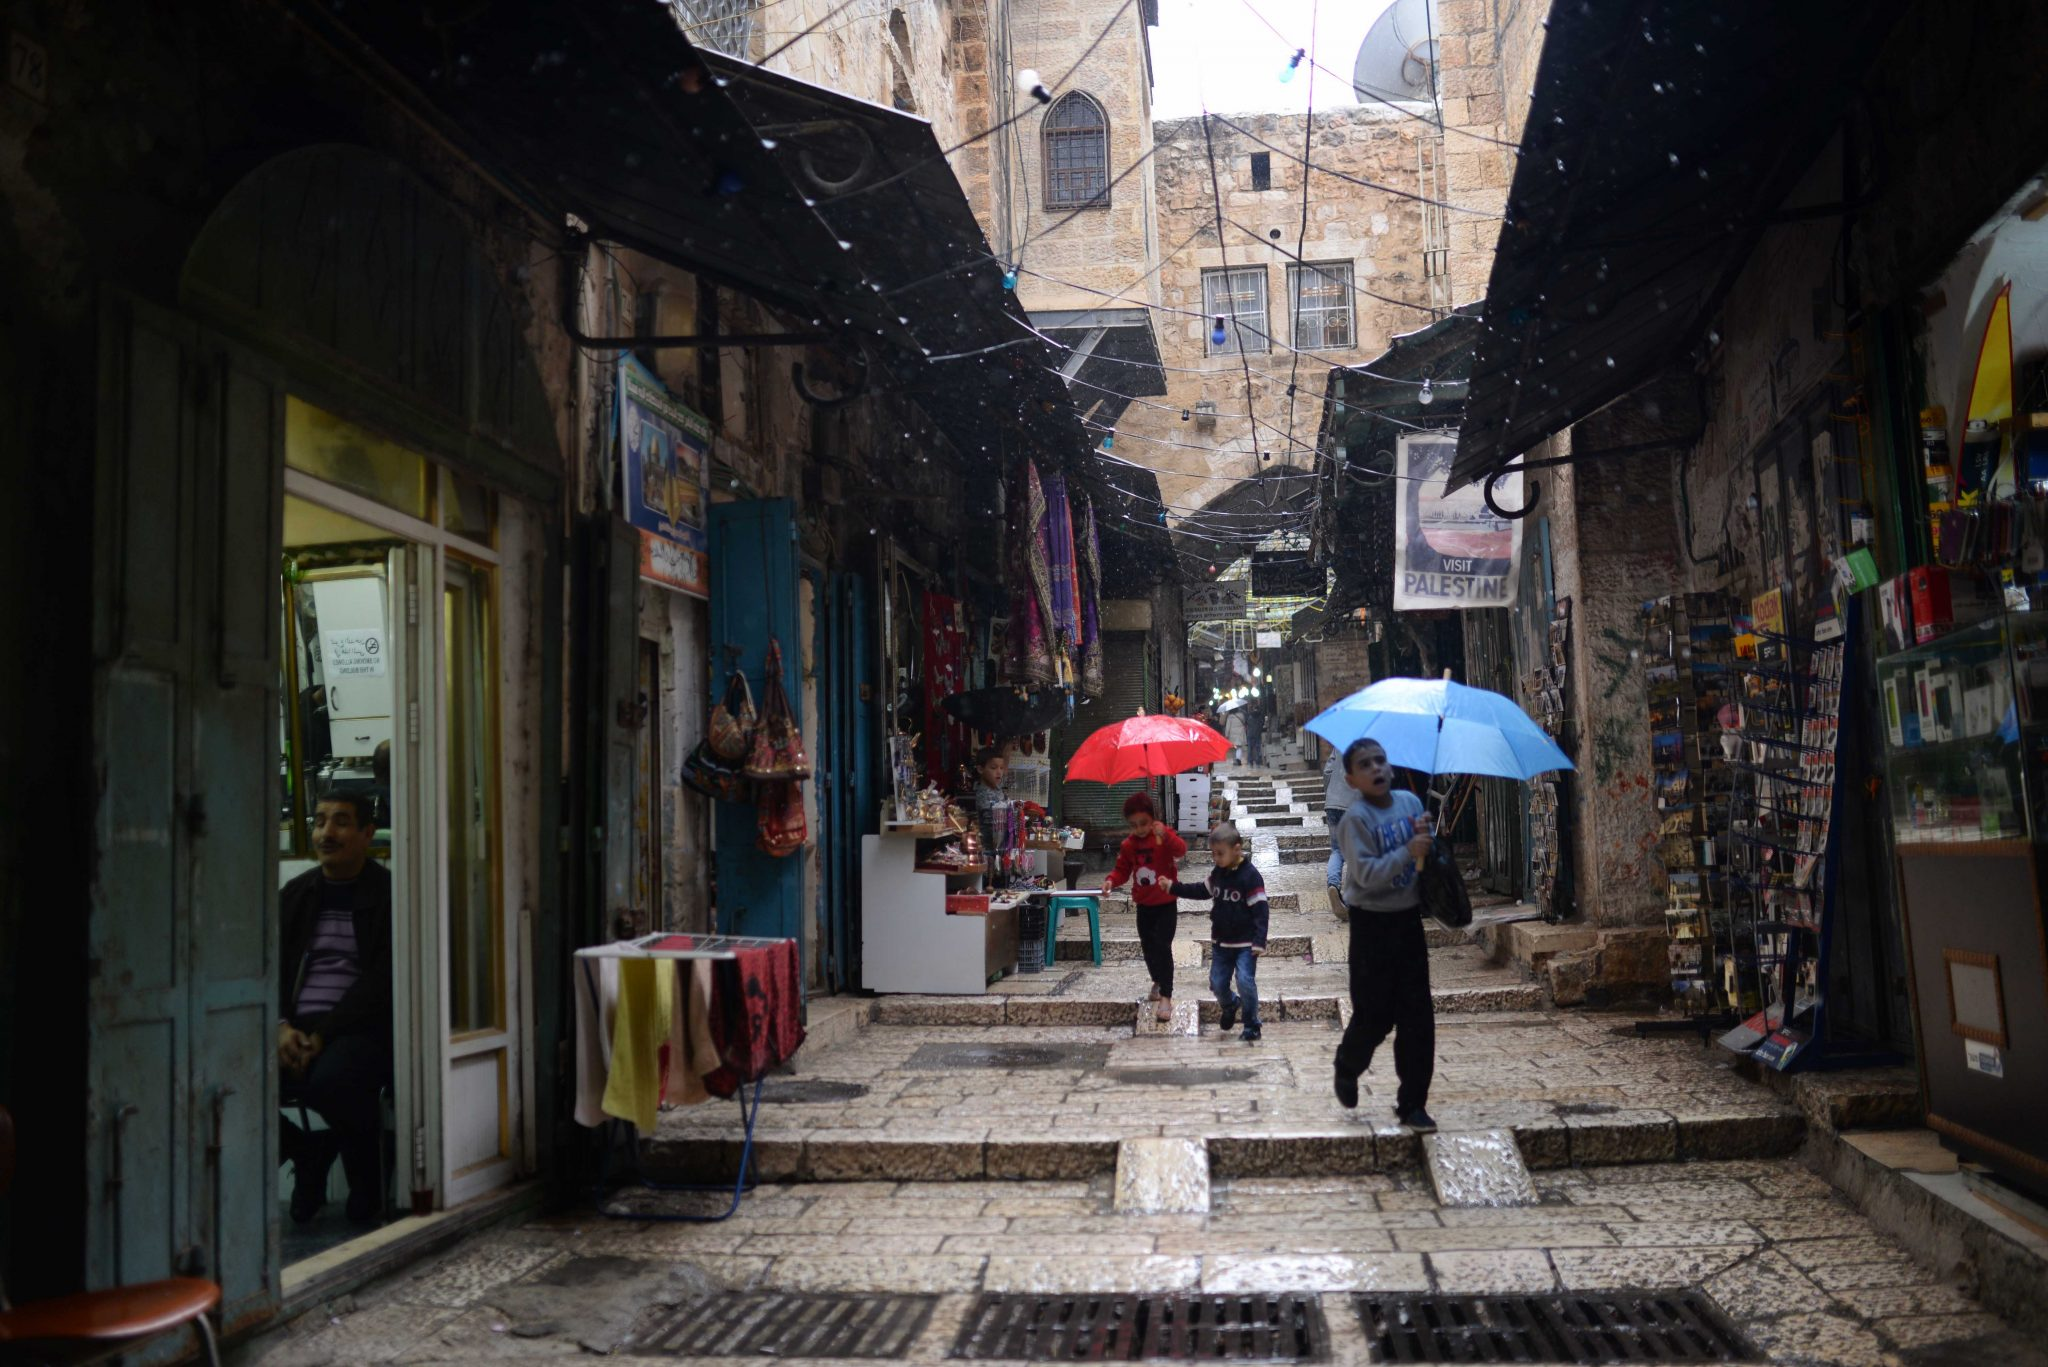 Muslim Quarter in Jerusalem